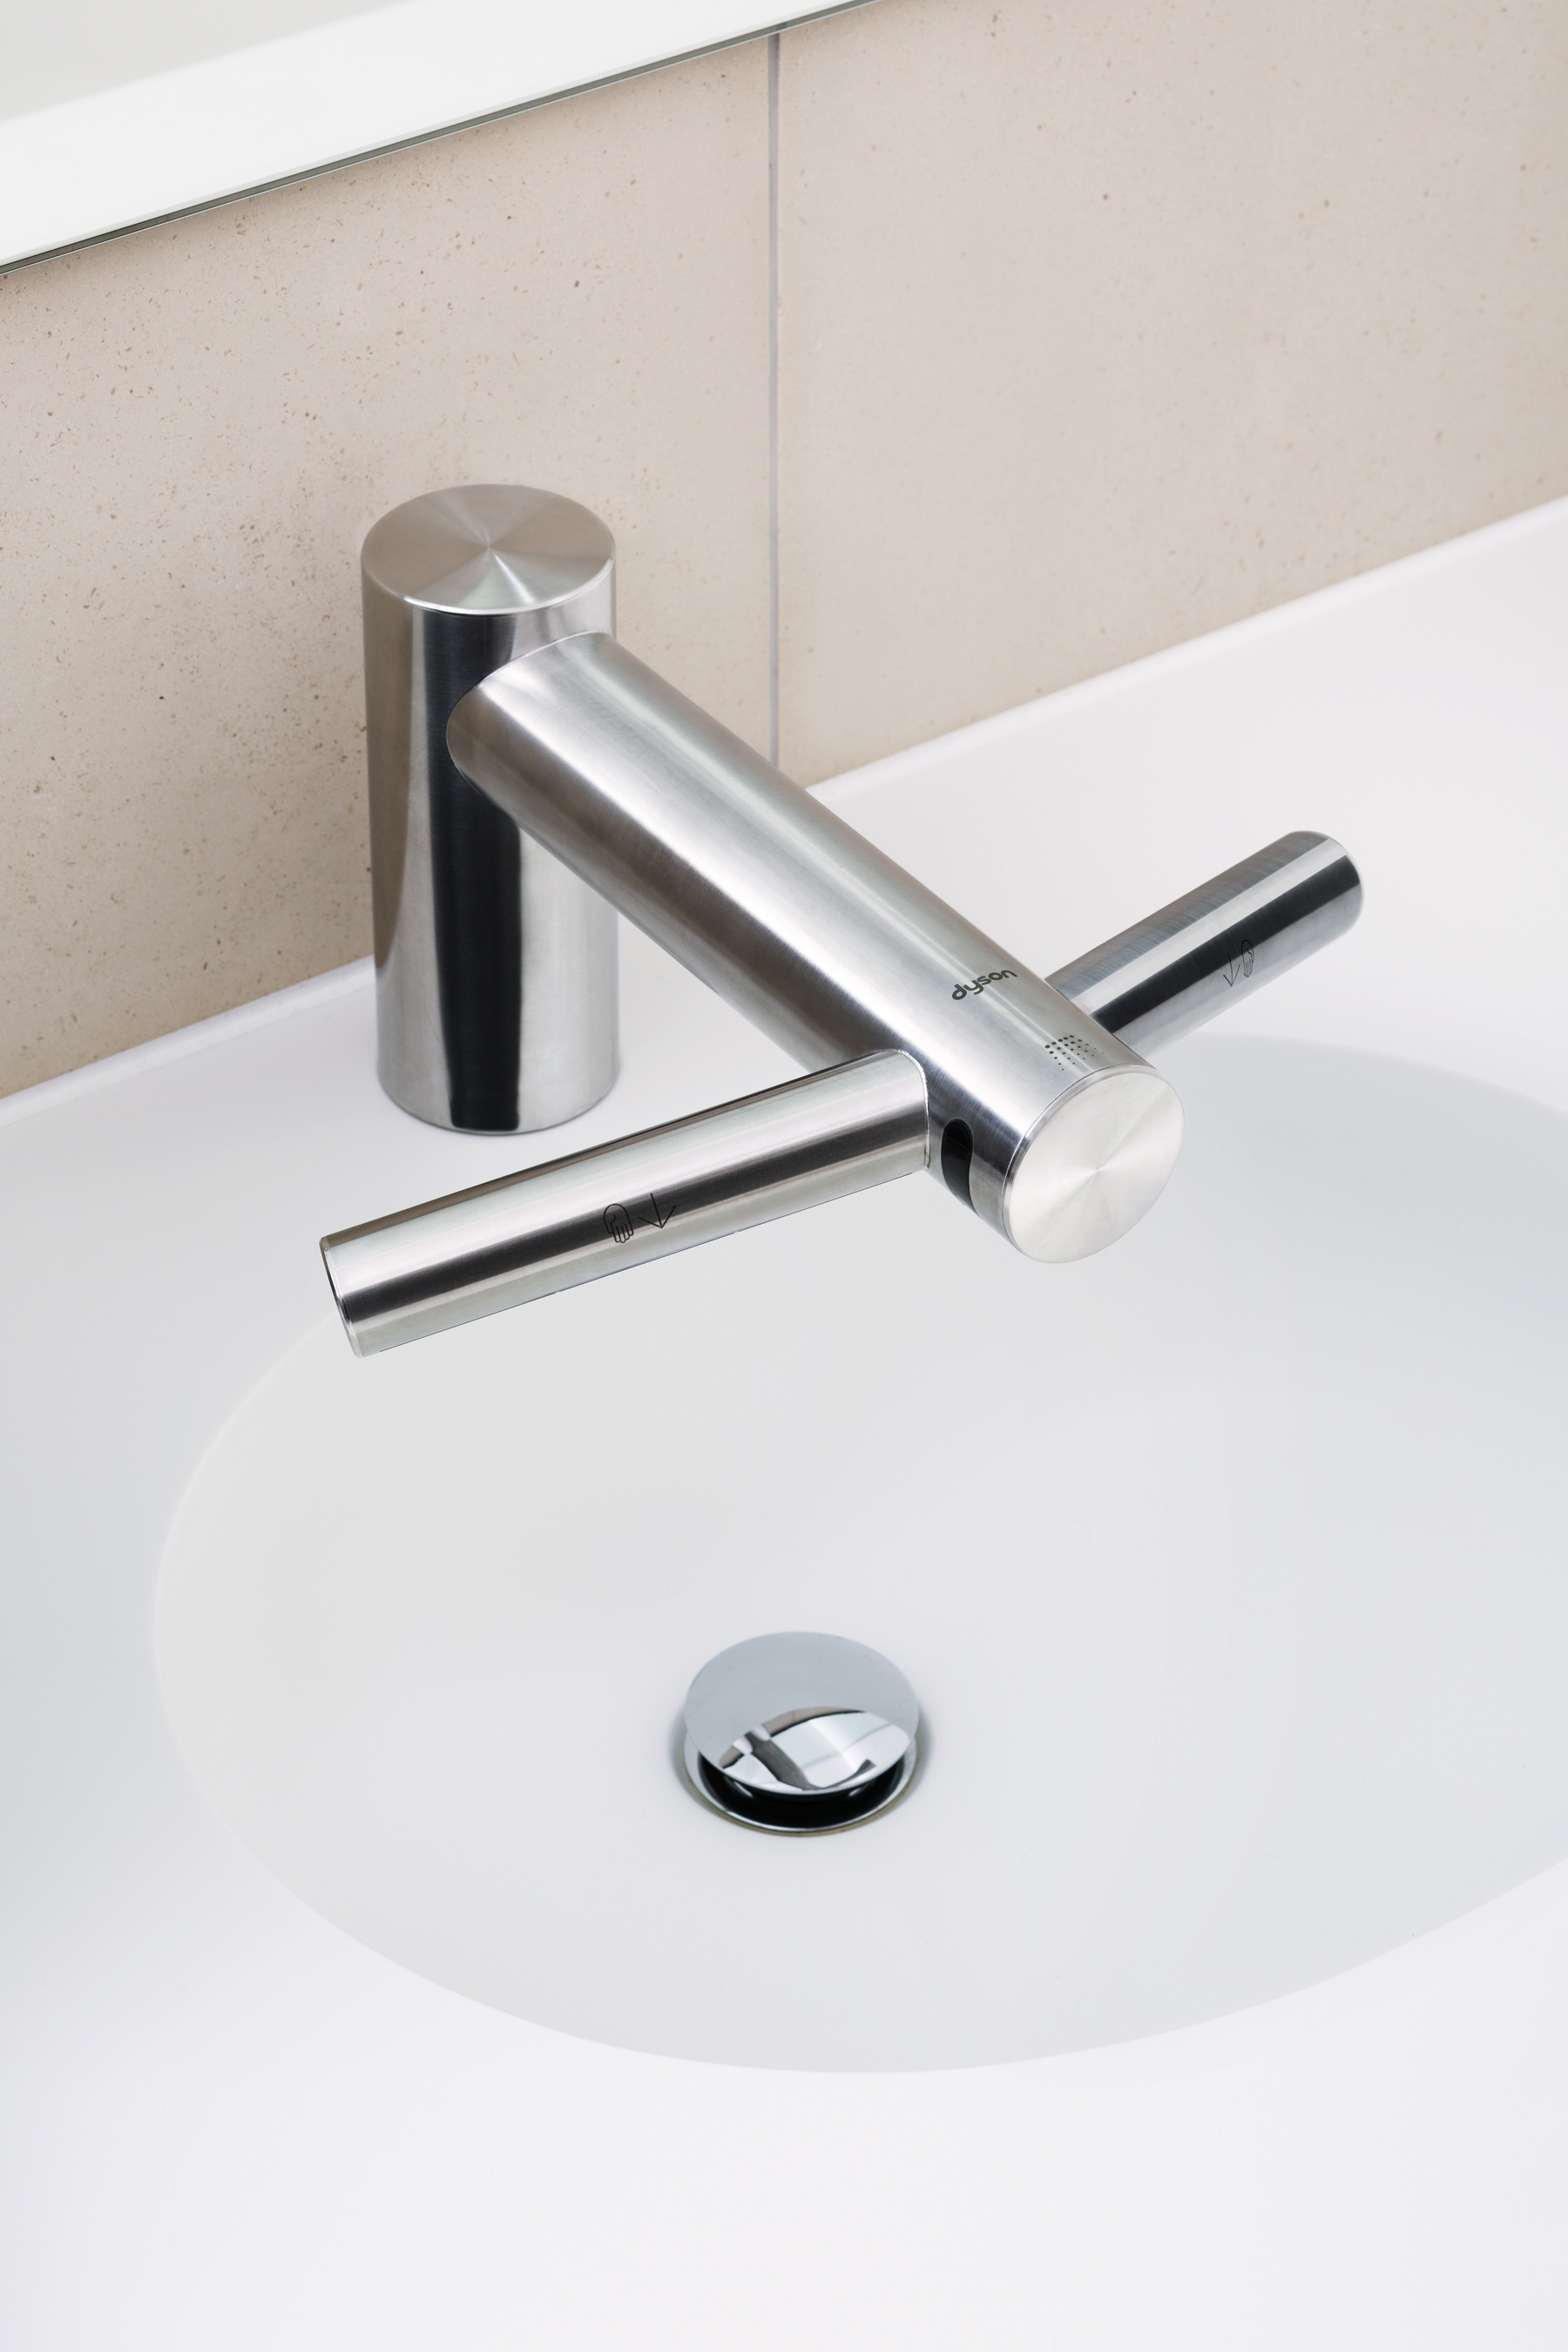 Faucet and Hand Dryer in One - retrofit